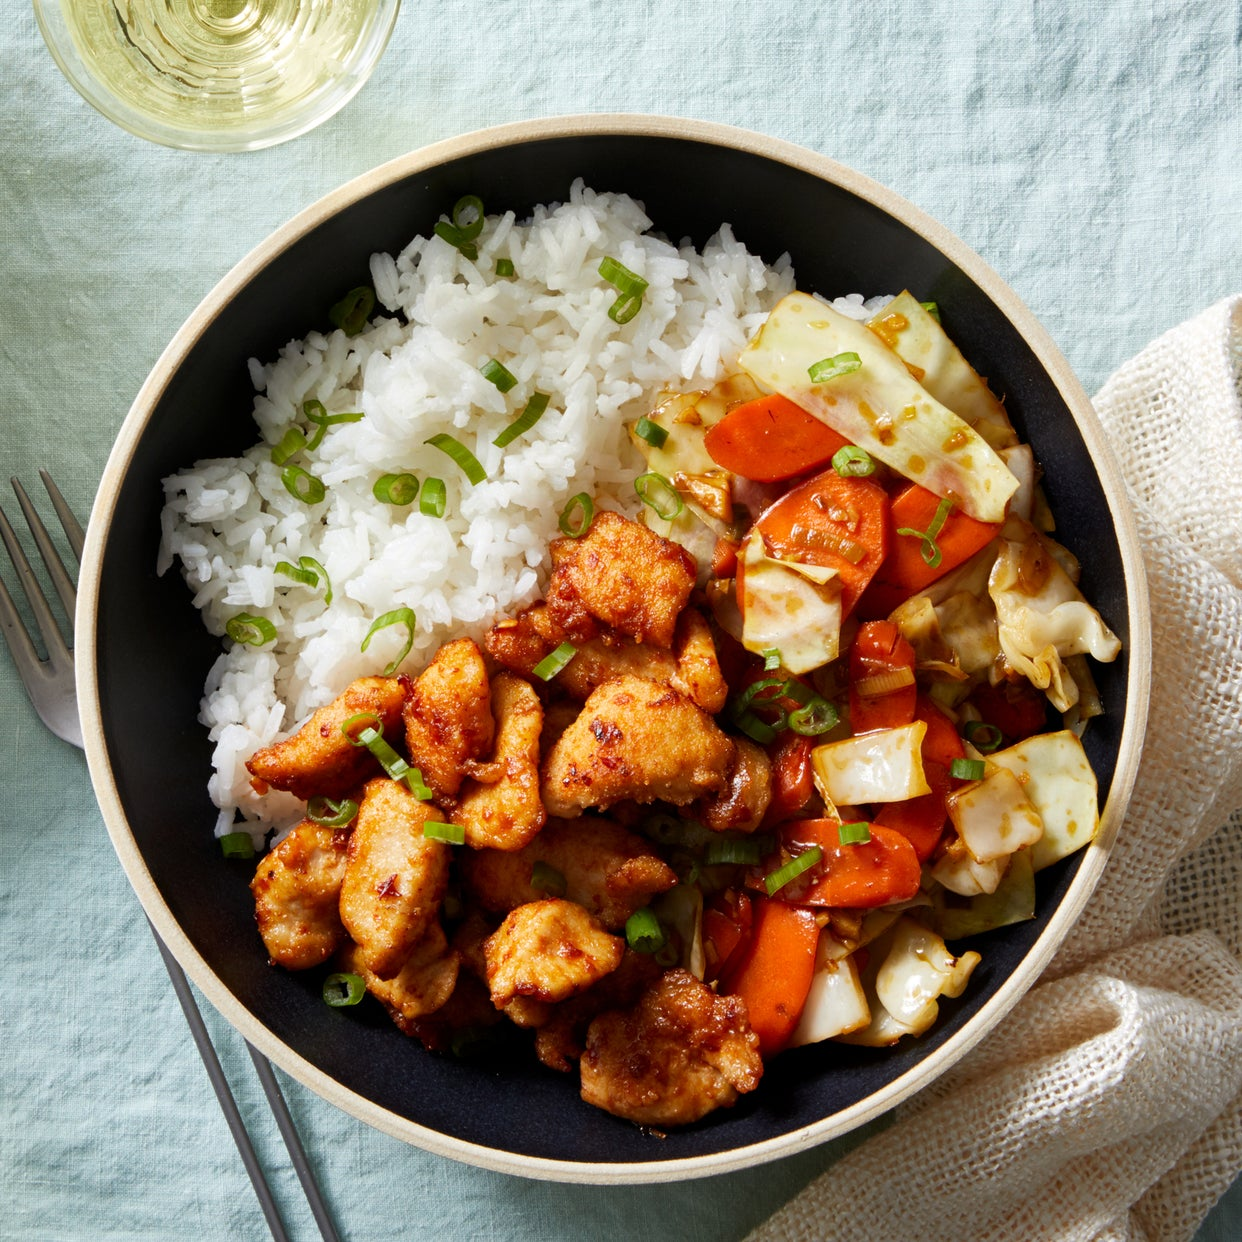 Spicy Chicken & Stir-Fried Vegetables with Jasmine Rice